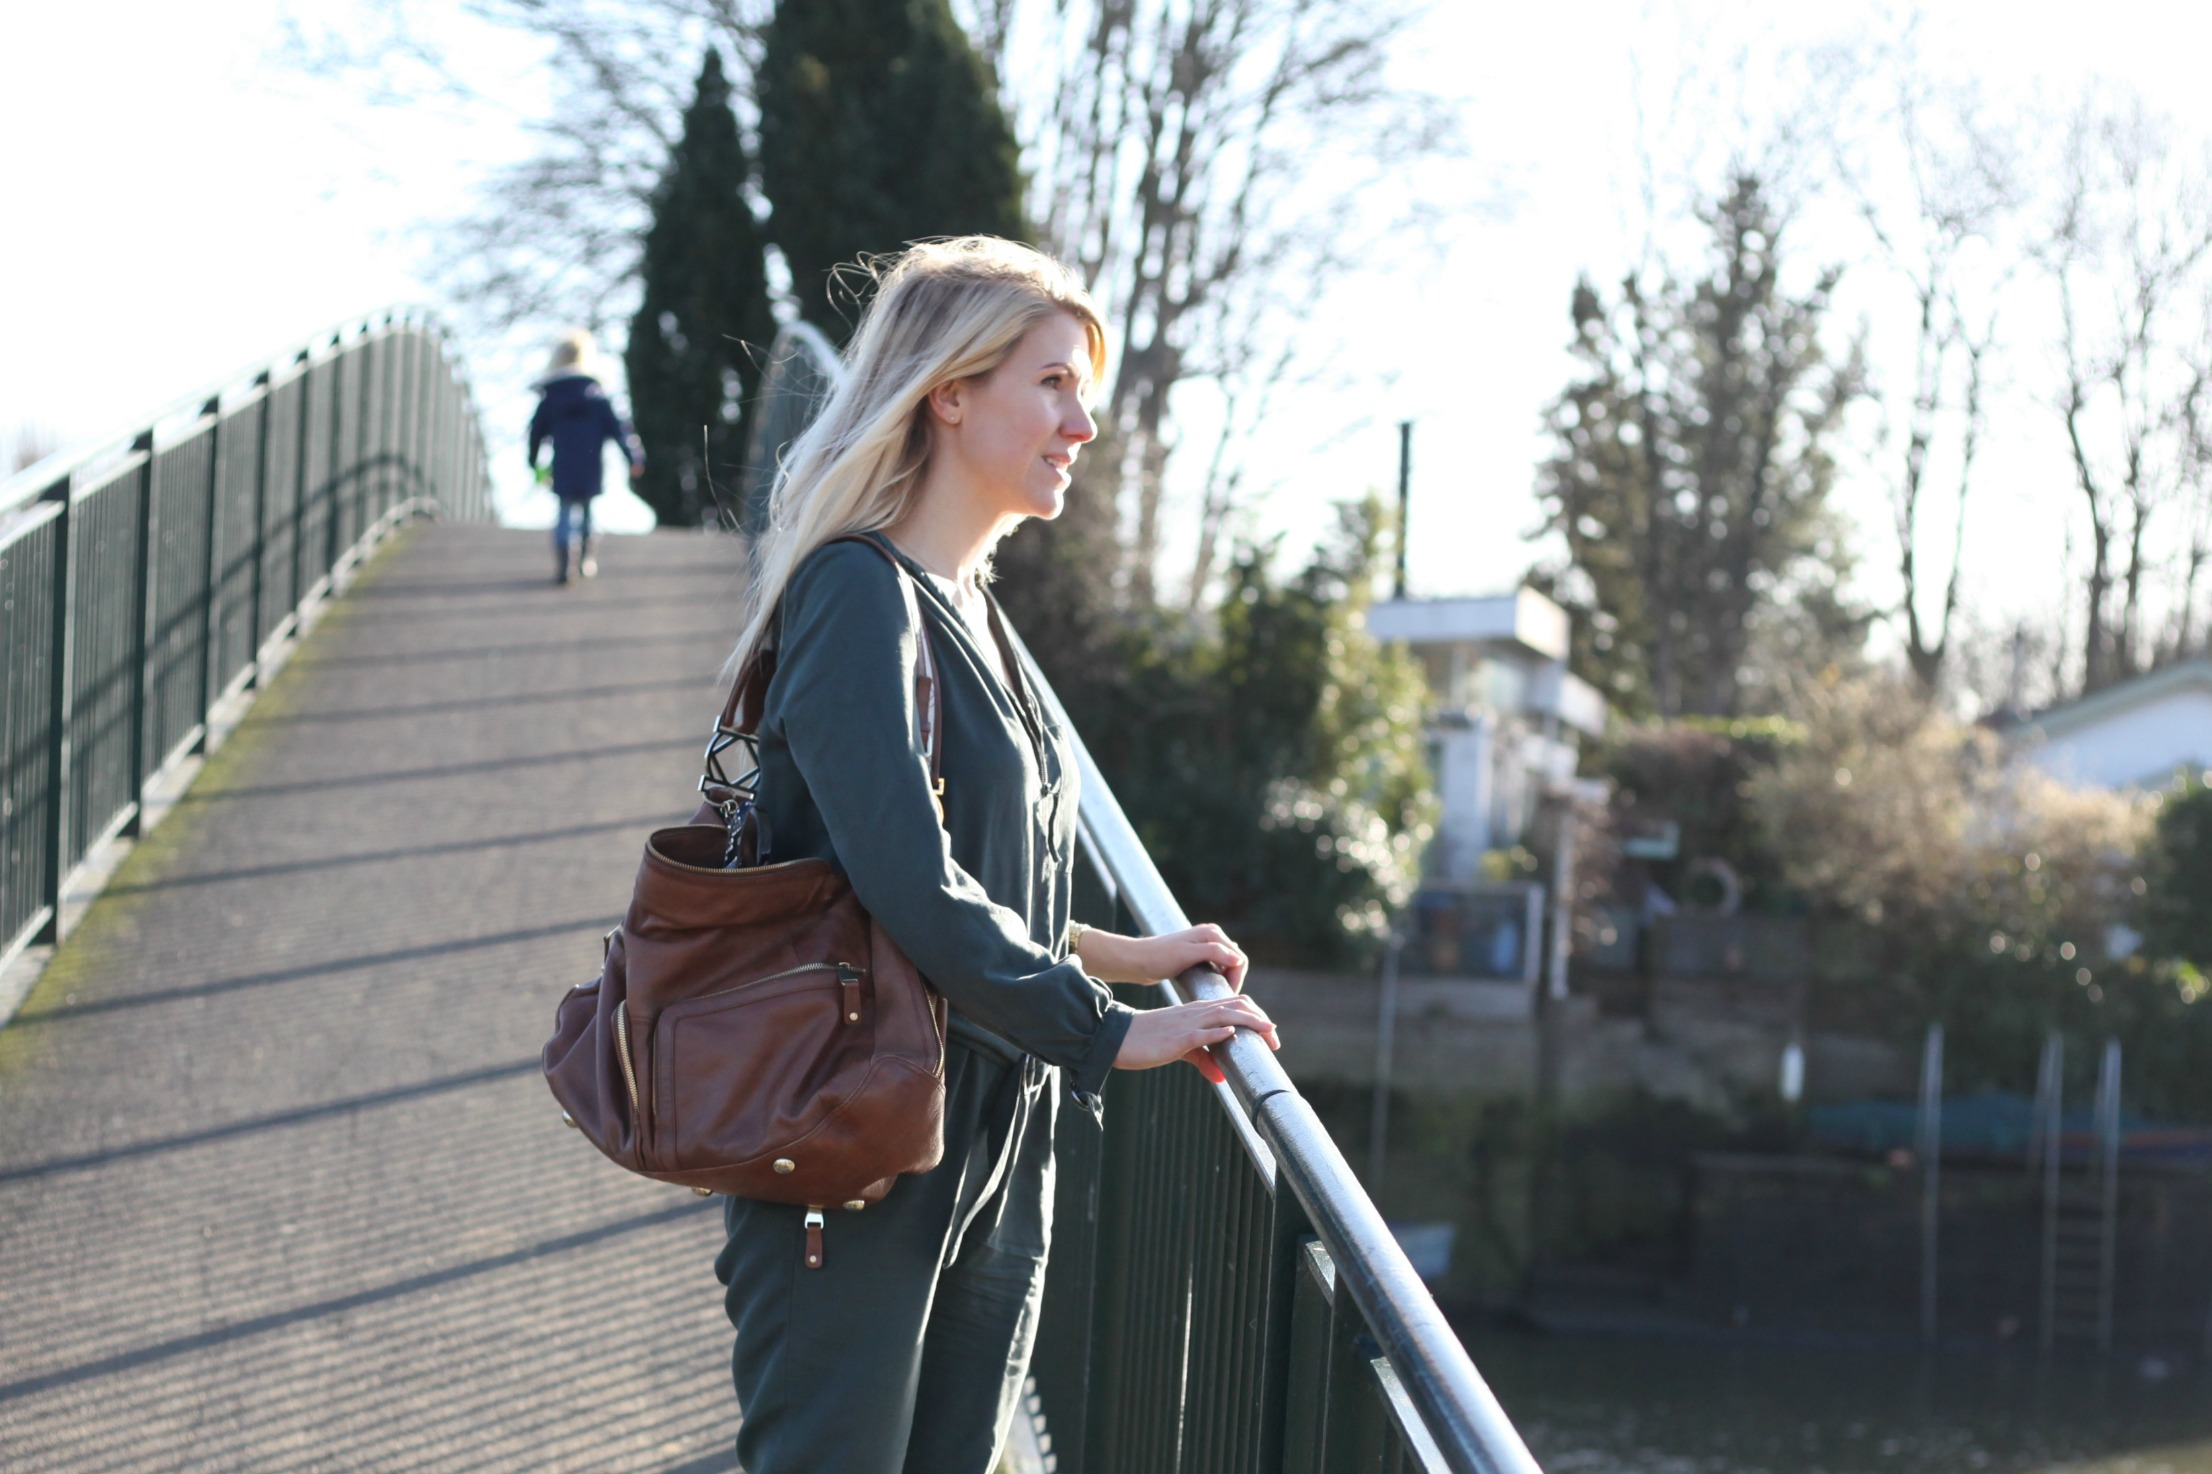 Green Verdon jumpsuit from sustainable fashion brand VILDNIS